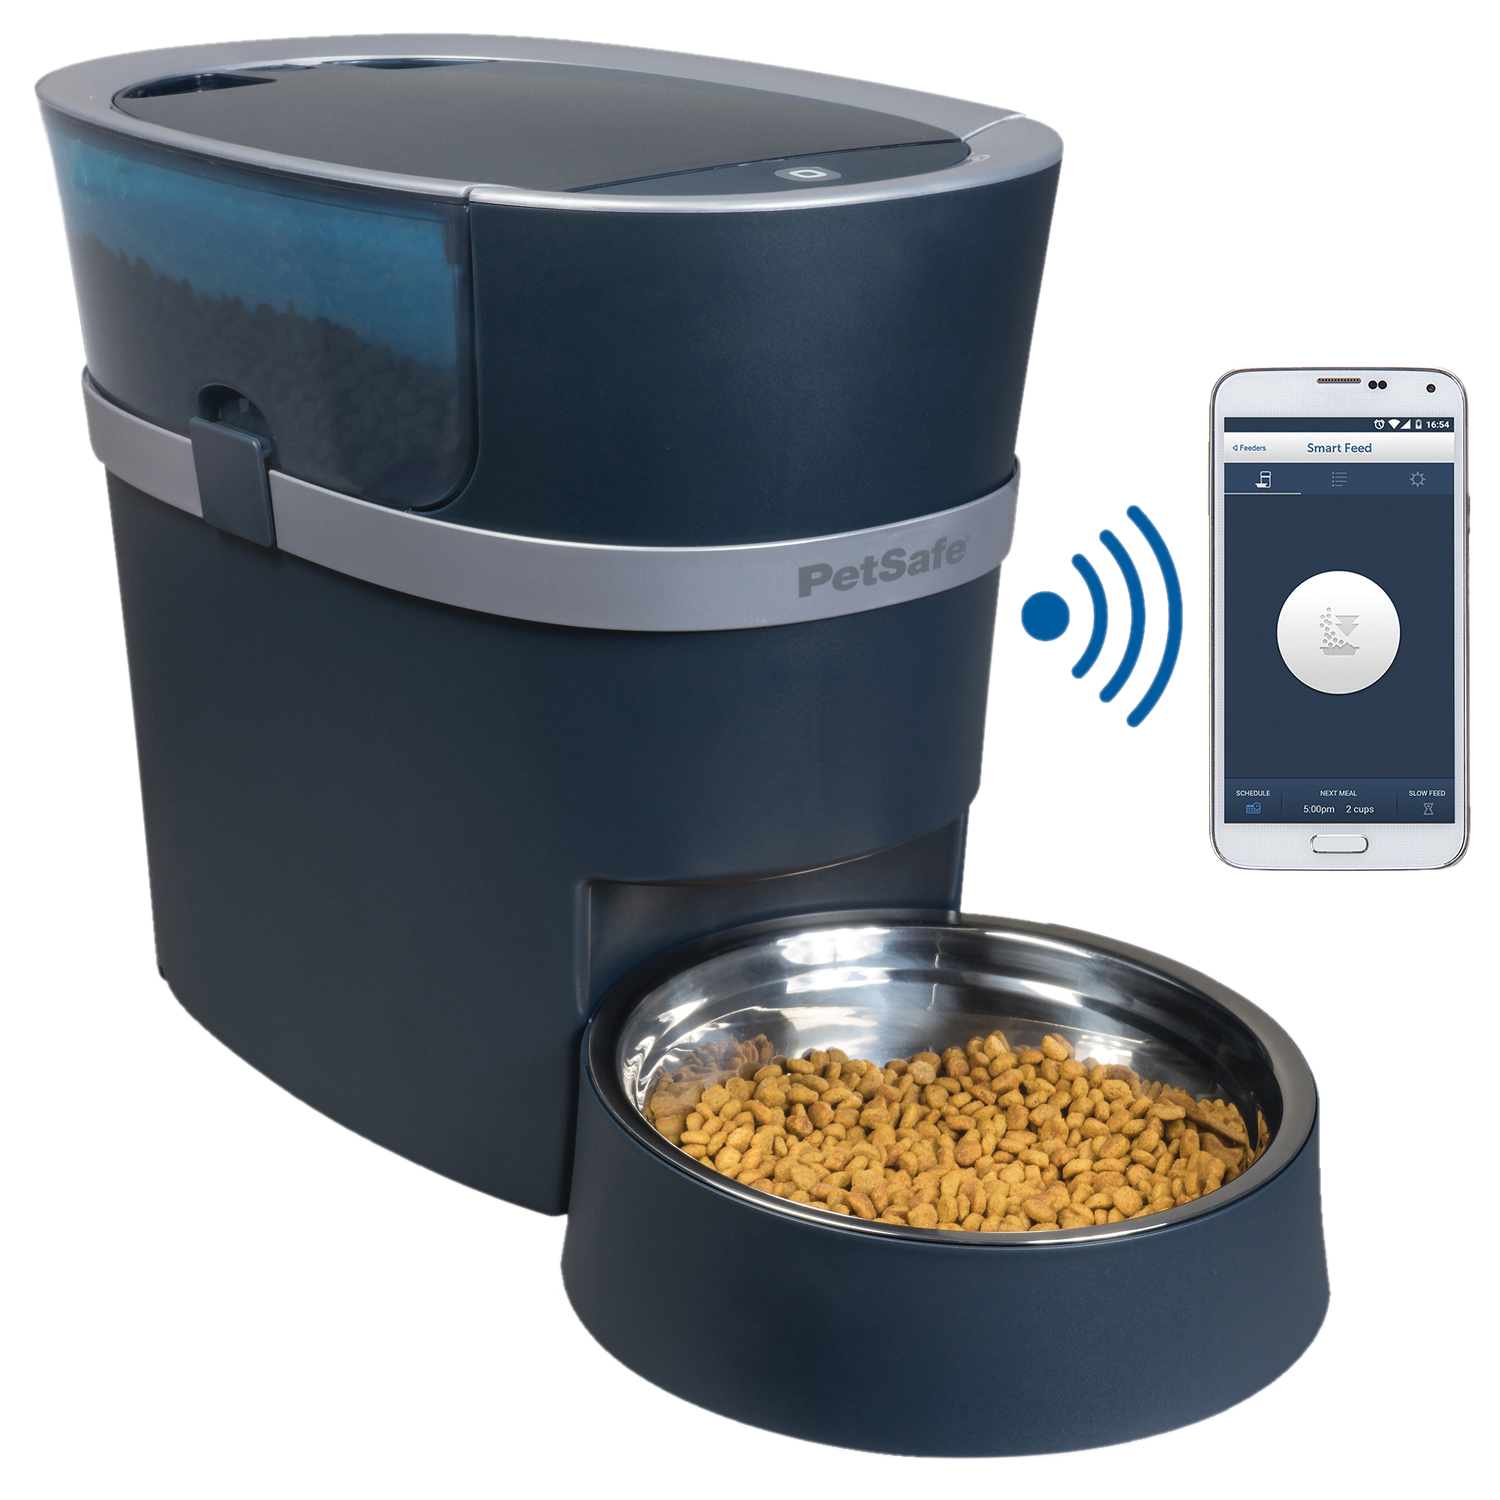 Automatic Cat Feeder Best Slow Feeder Cat Bowl Automatic Cat Feeder Wet Food And More The Kitty Expert